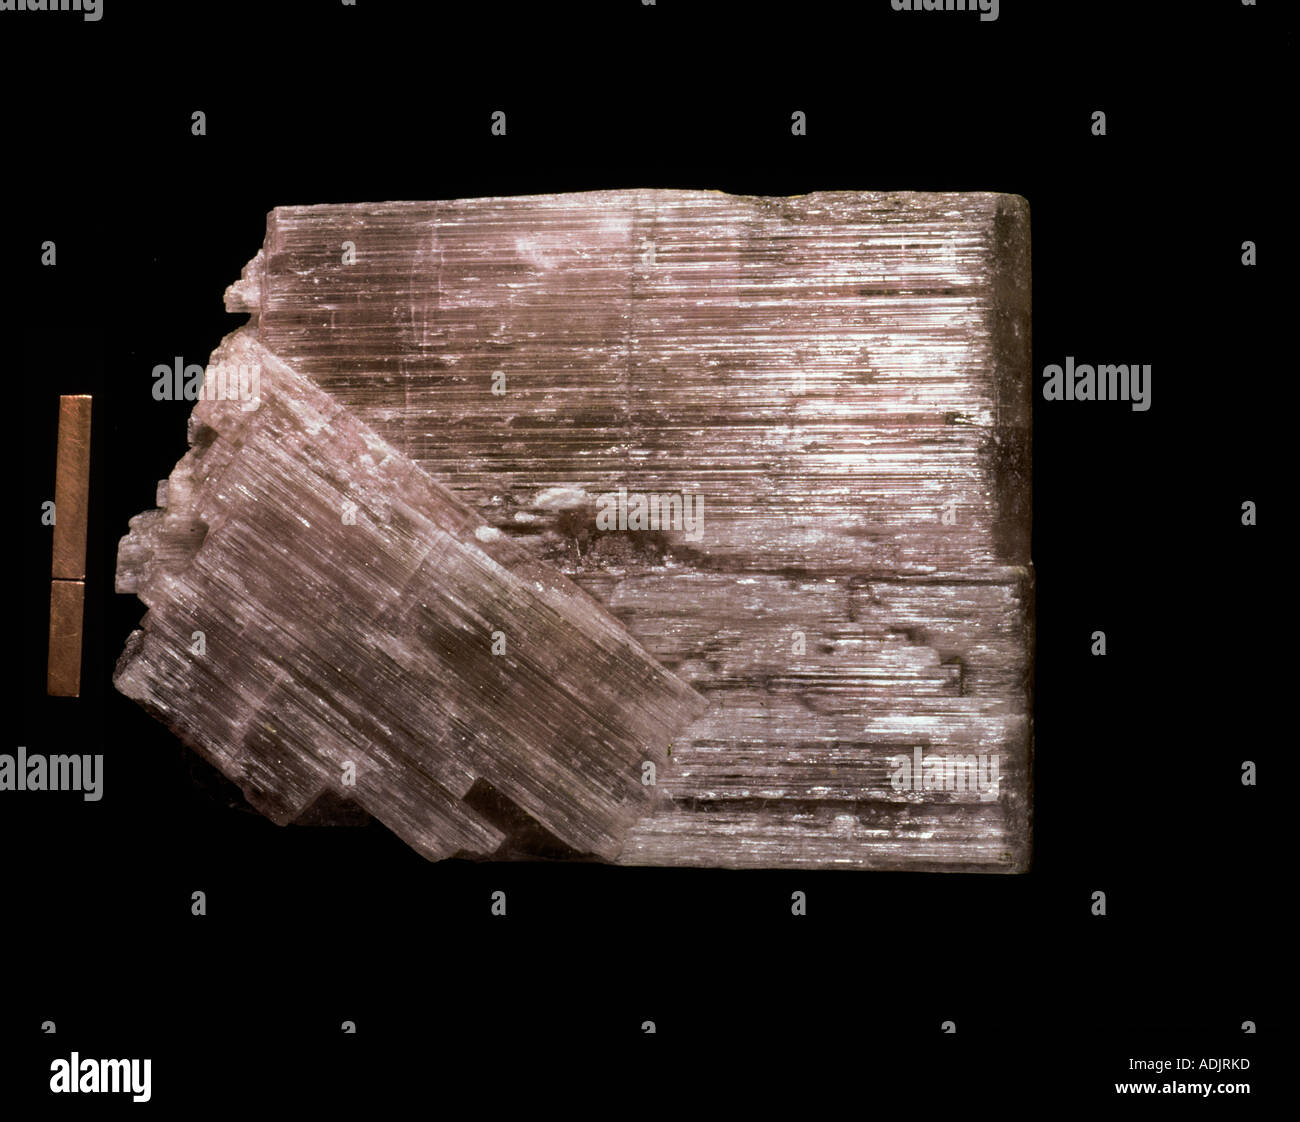 Anhydrite - Stock Image